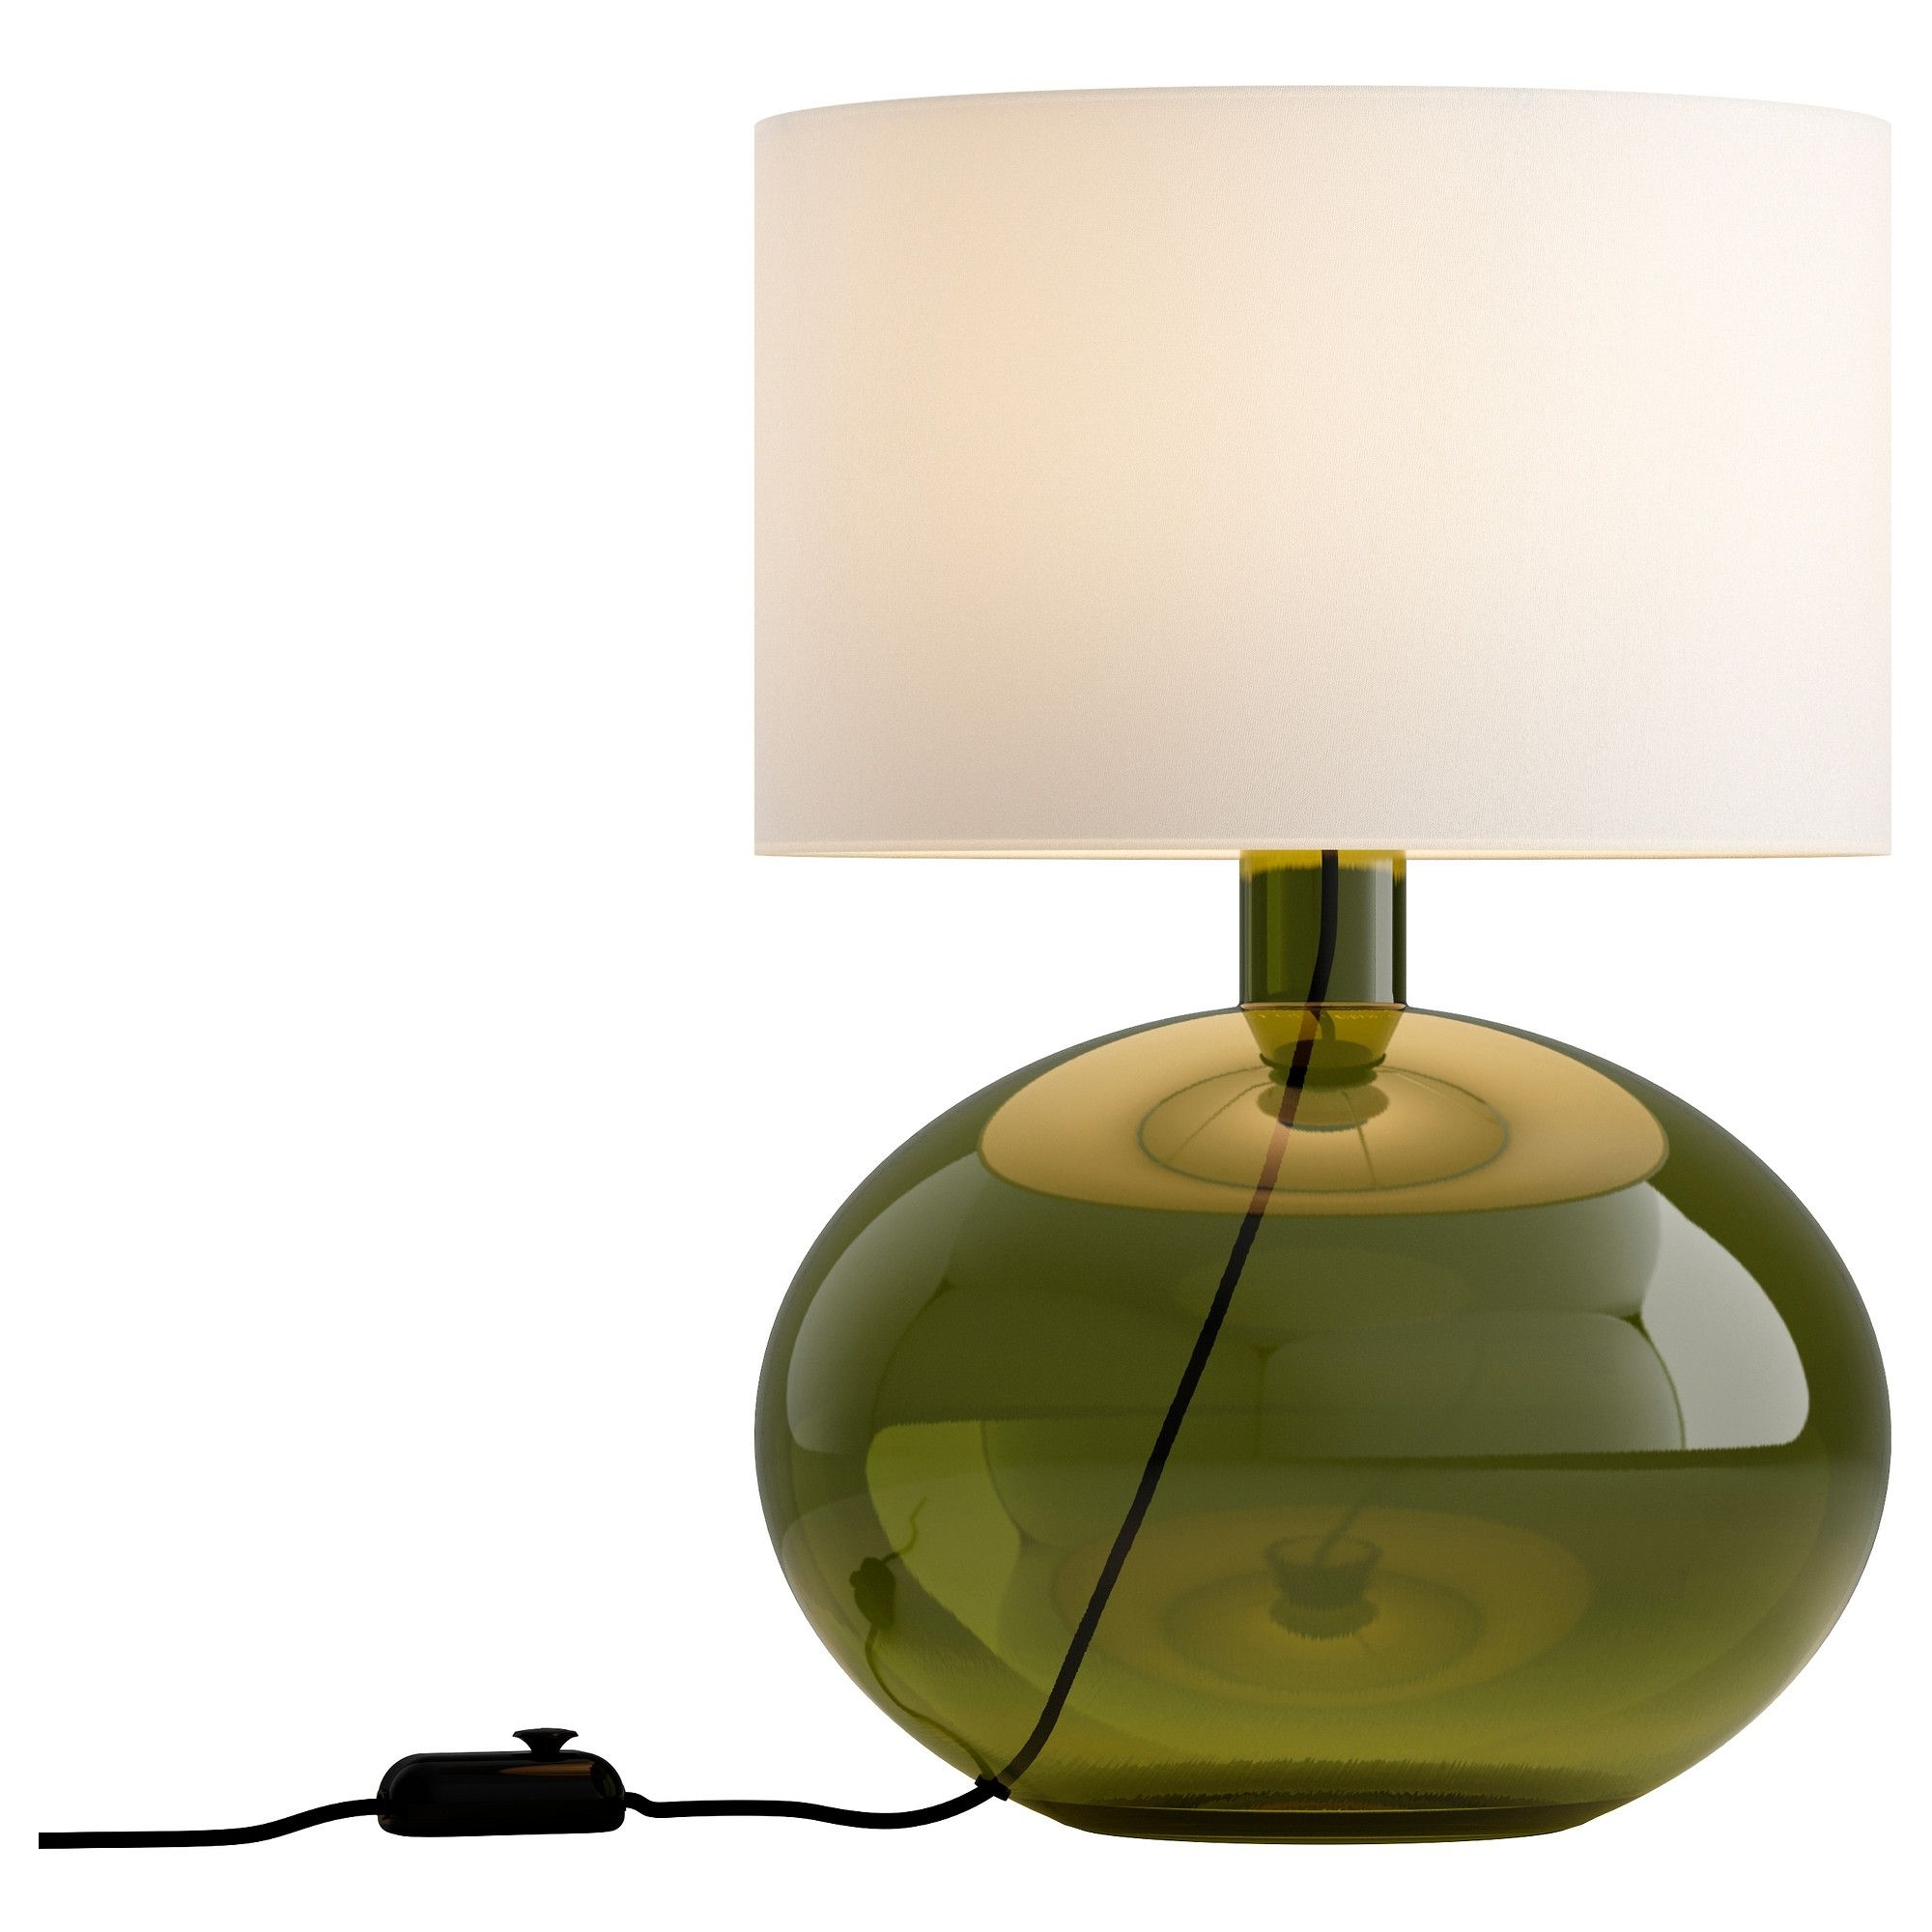 Living Room Table Lamps At Ikea In Well Known Ljusås Ysby Table Lamp – Green – Ikea (View 8 of 20)